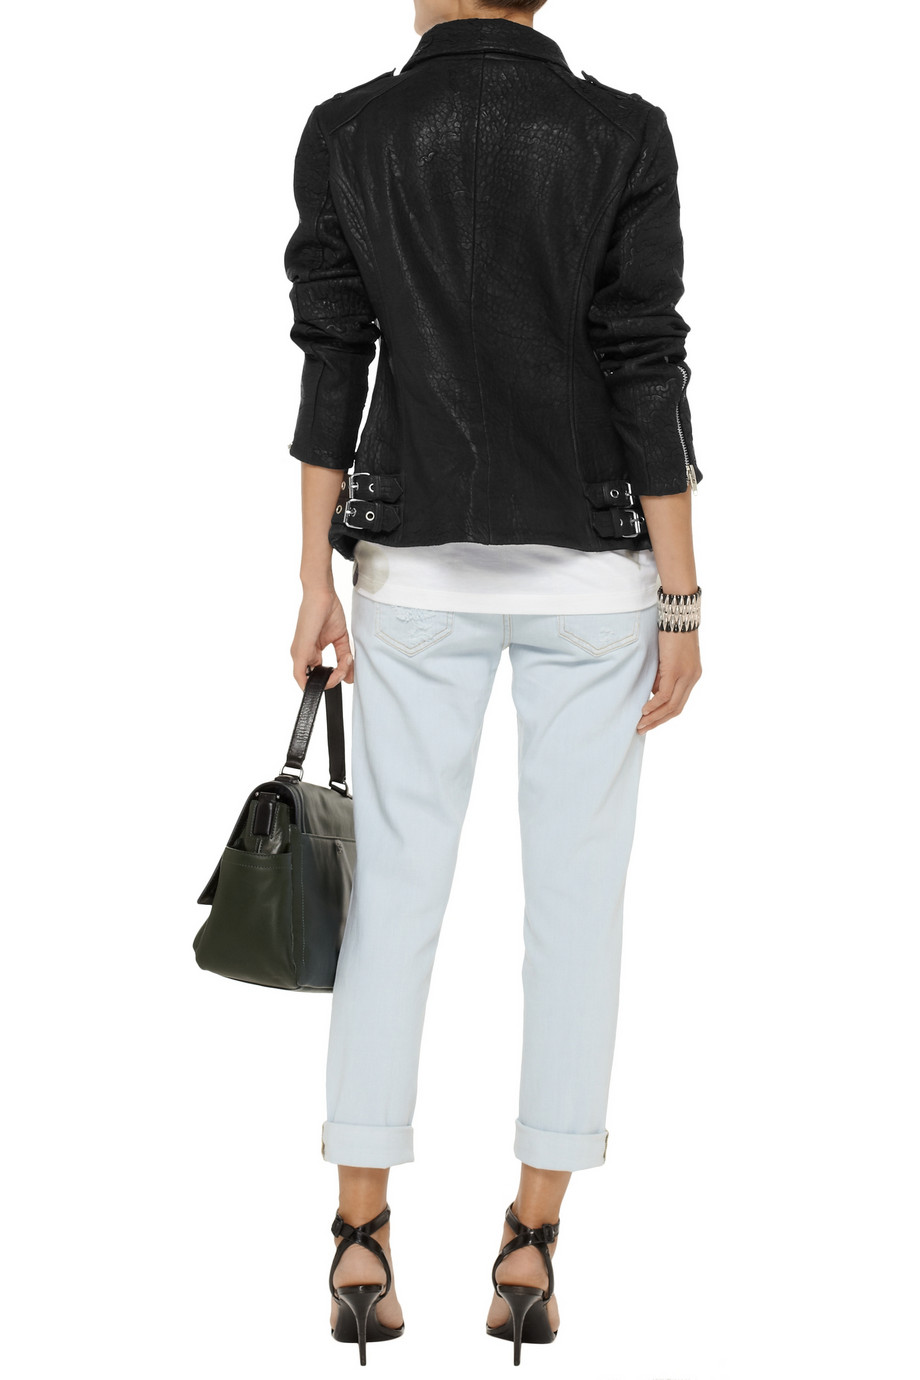 W118 by Walter Baker Aggie textured-leather biker jacket – 55% at THE OUTNET.COM